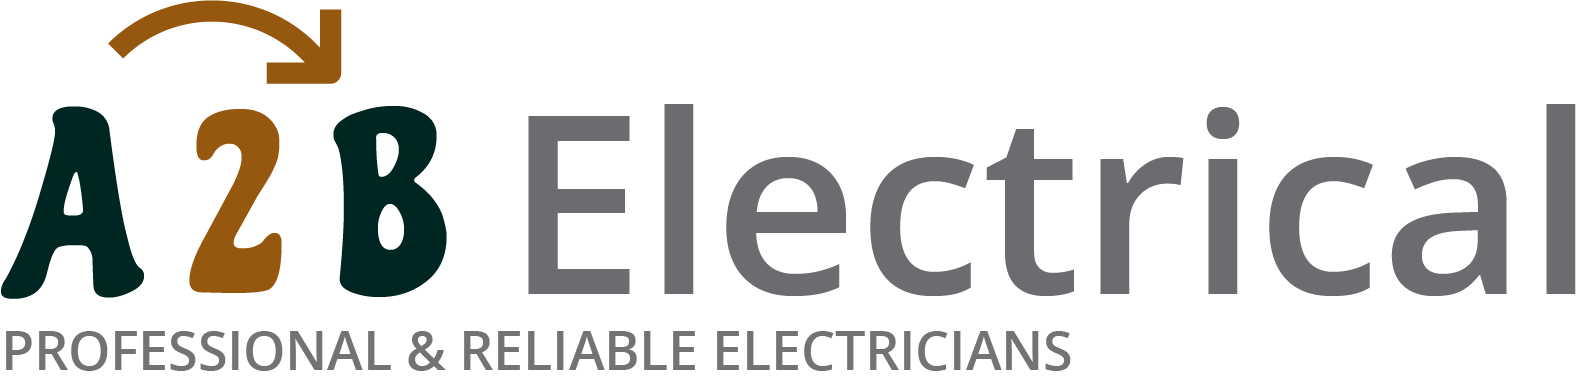 If you have electrical wiring problems in West Norwood, we can provide an electrician to have a look for you.